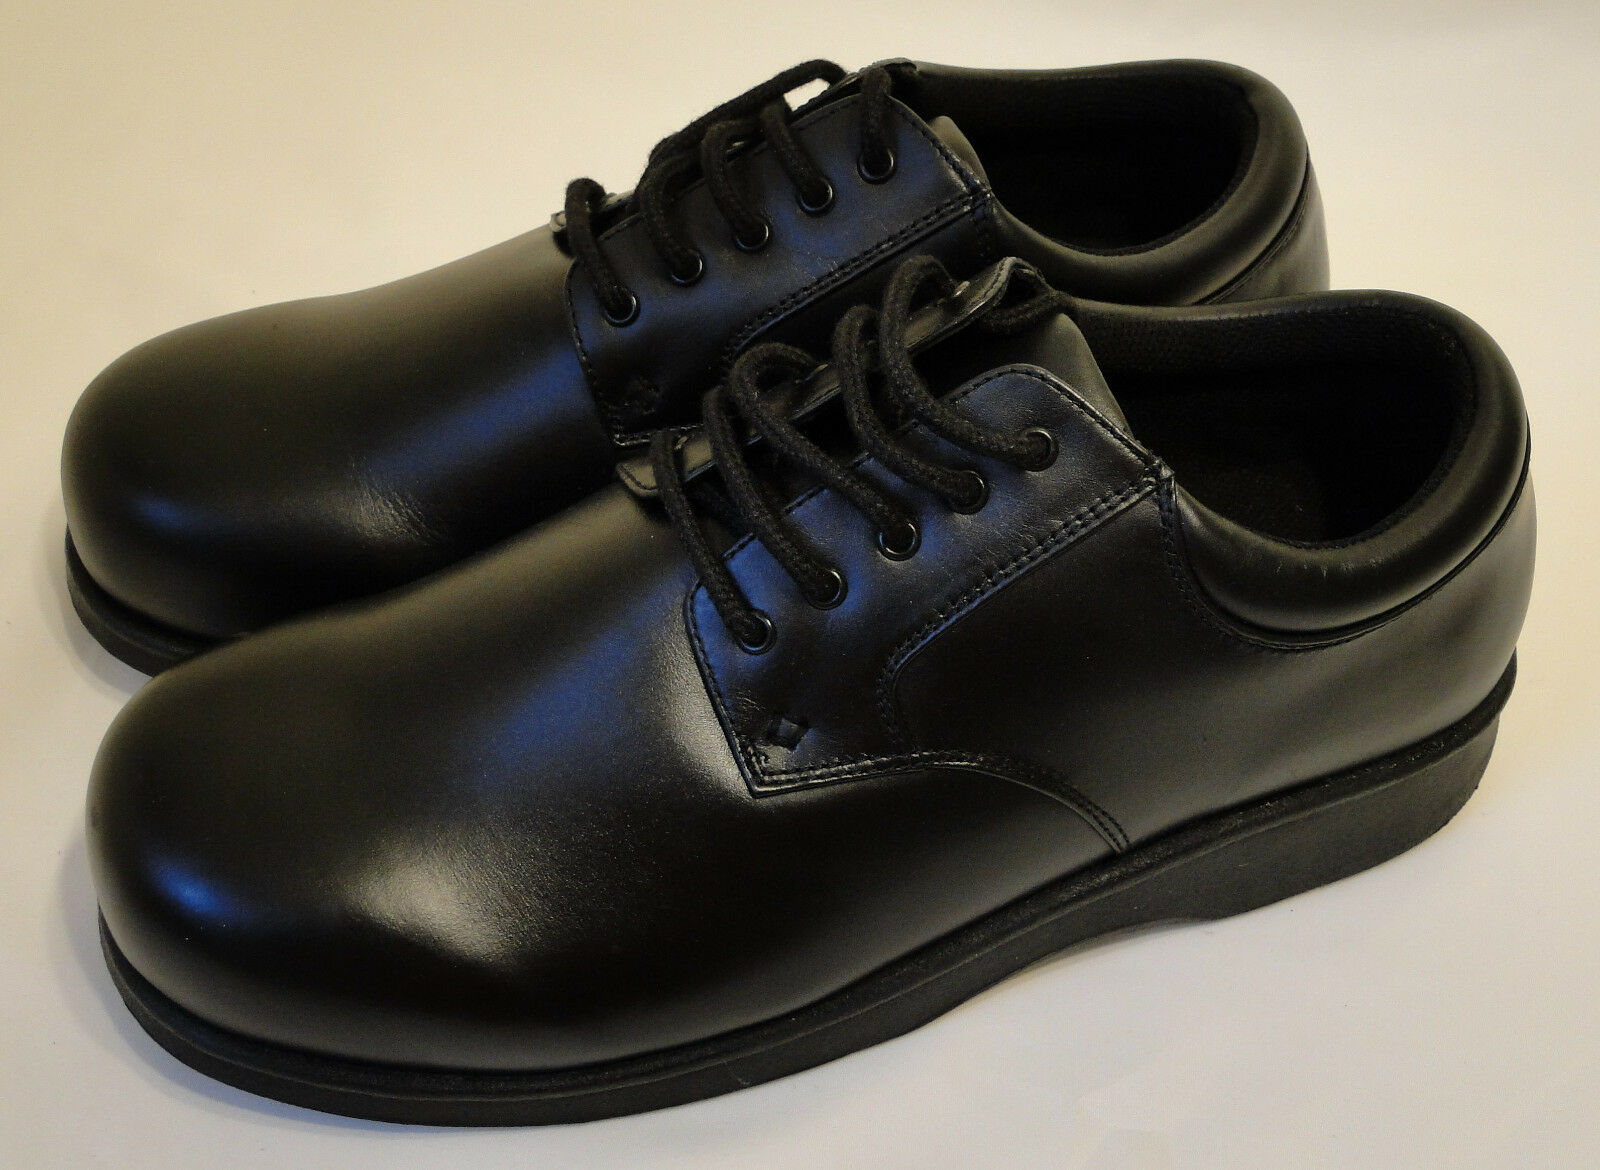 InStride Comfort Orthopedic Therapeutic Lace Up Shoes in Uomo 11 Wide NWOB